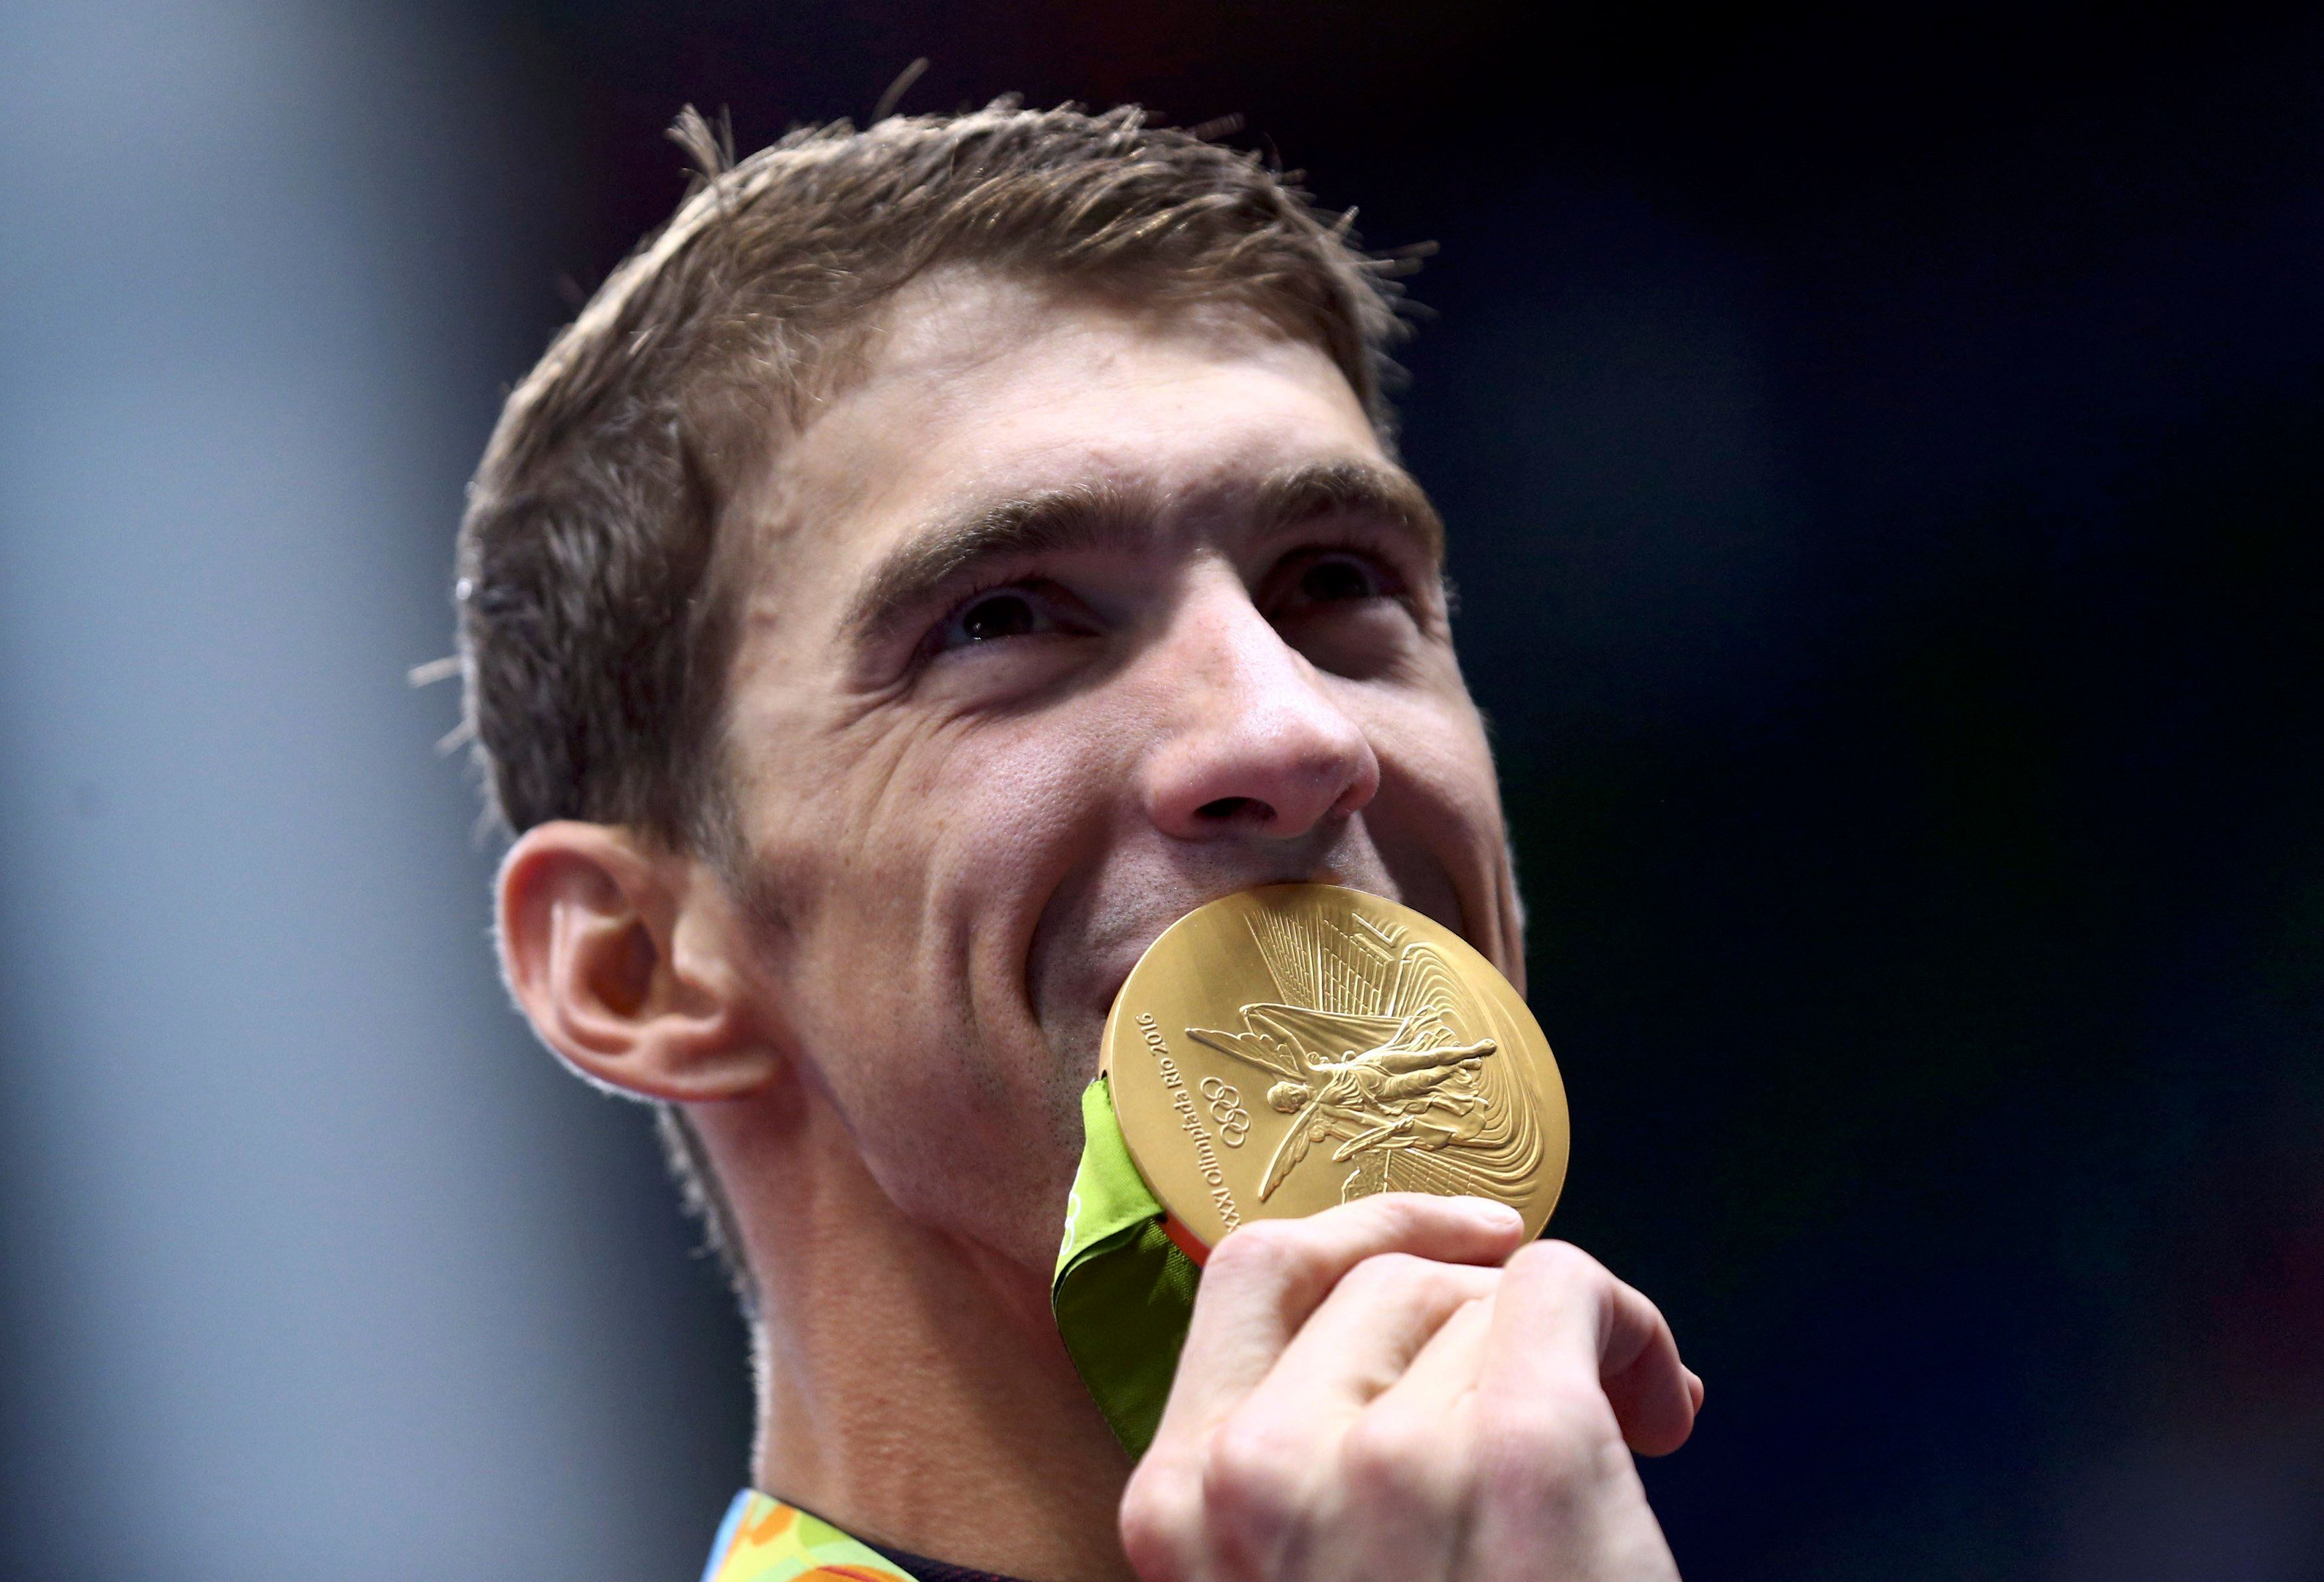 2016 Rio Olympics - Swimming - Victory Ceremony - Men's 4 x 100m Medley Relay Victory Ceremony - Olympic Aquatics Stadium - Rio de Janeiro, Brazil - 13/08/2016. Michael Phelps (USA) of USA poses with his gold medal.  REUTERS/Marcos Brindicci TPX IMAGES OF THE DAY FOR EDITORIAL USE ONLY. NOT FOR SALE FOR MARKETING OR ADVERTISING CAMPAIGNS.